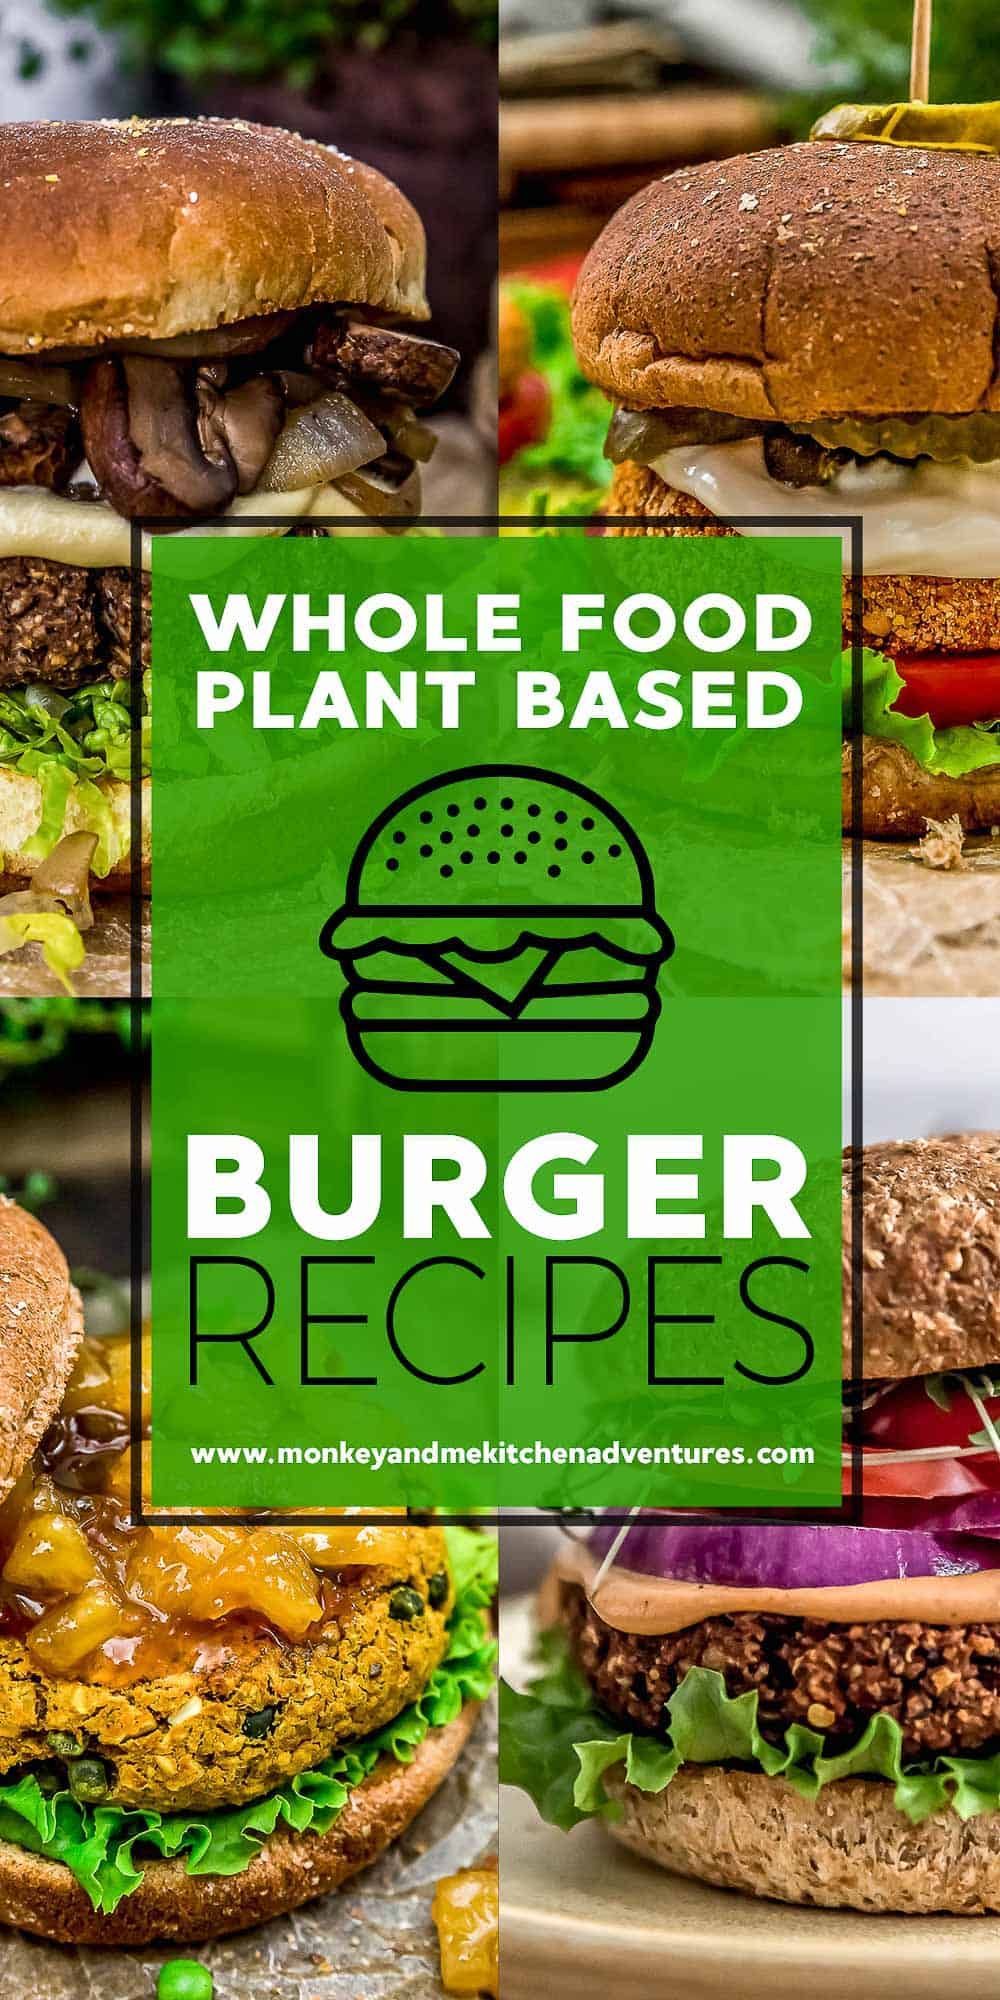 Whole Food Plant Based Burgers with Text Description